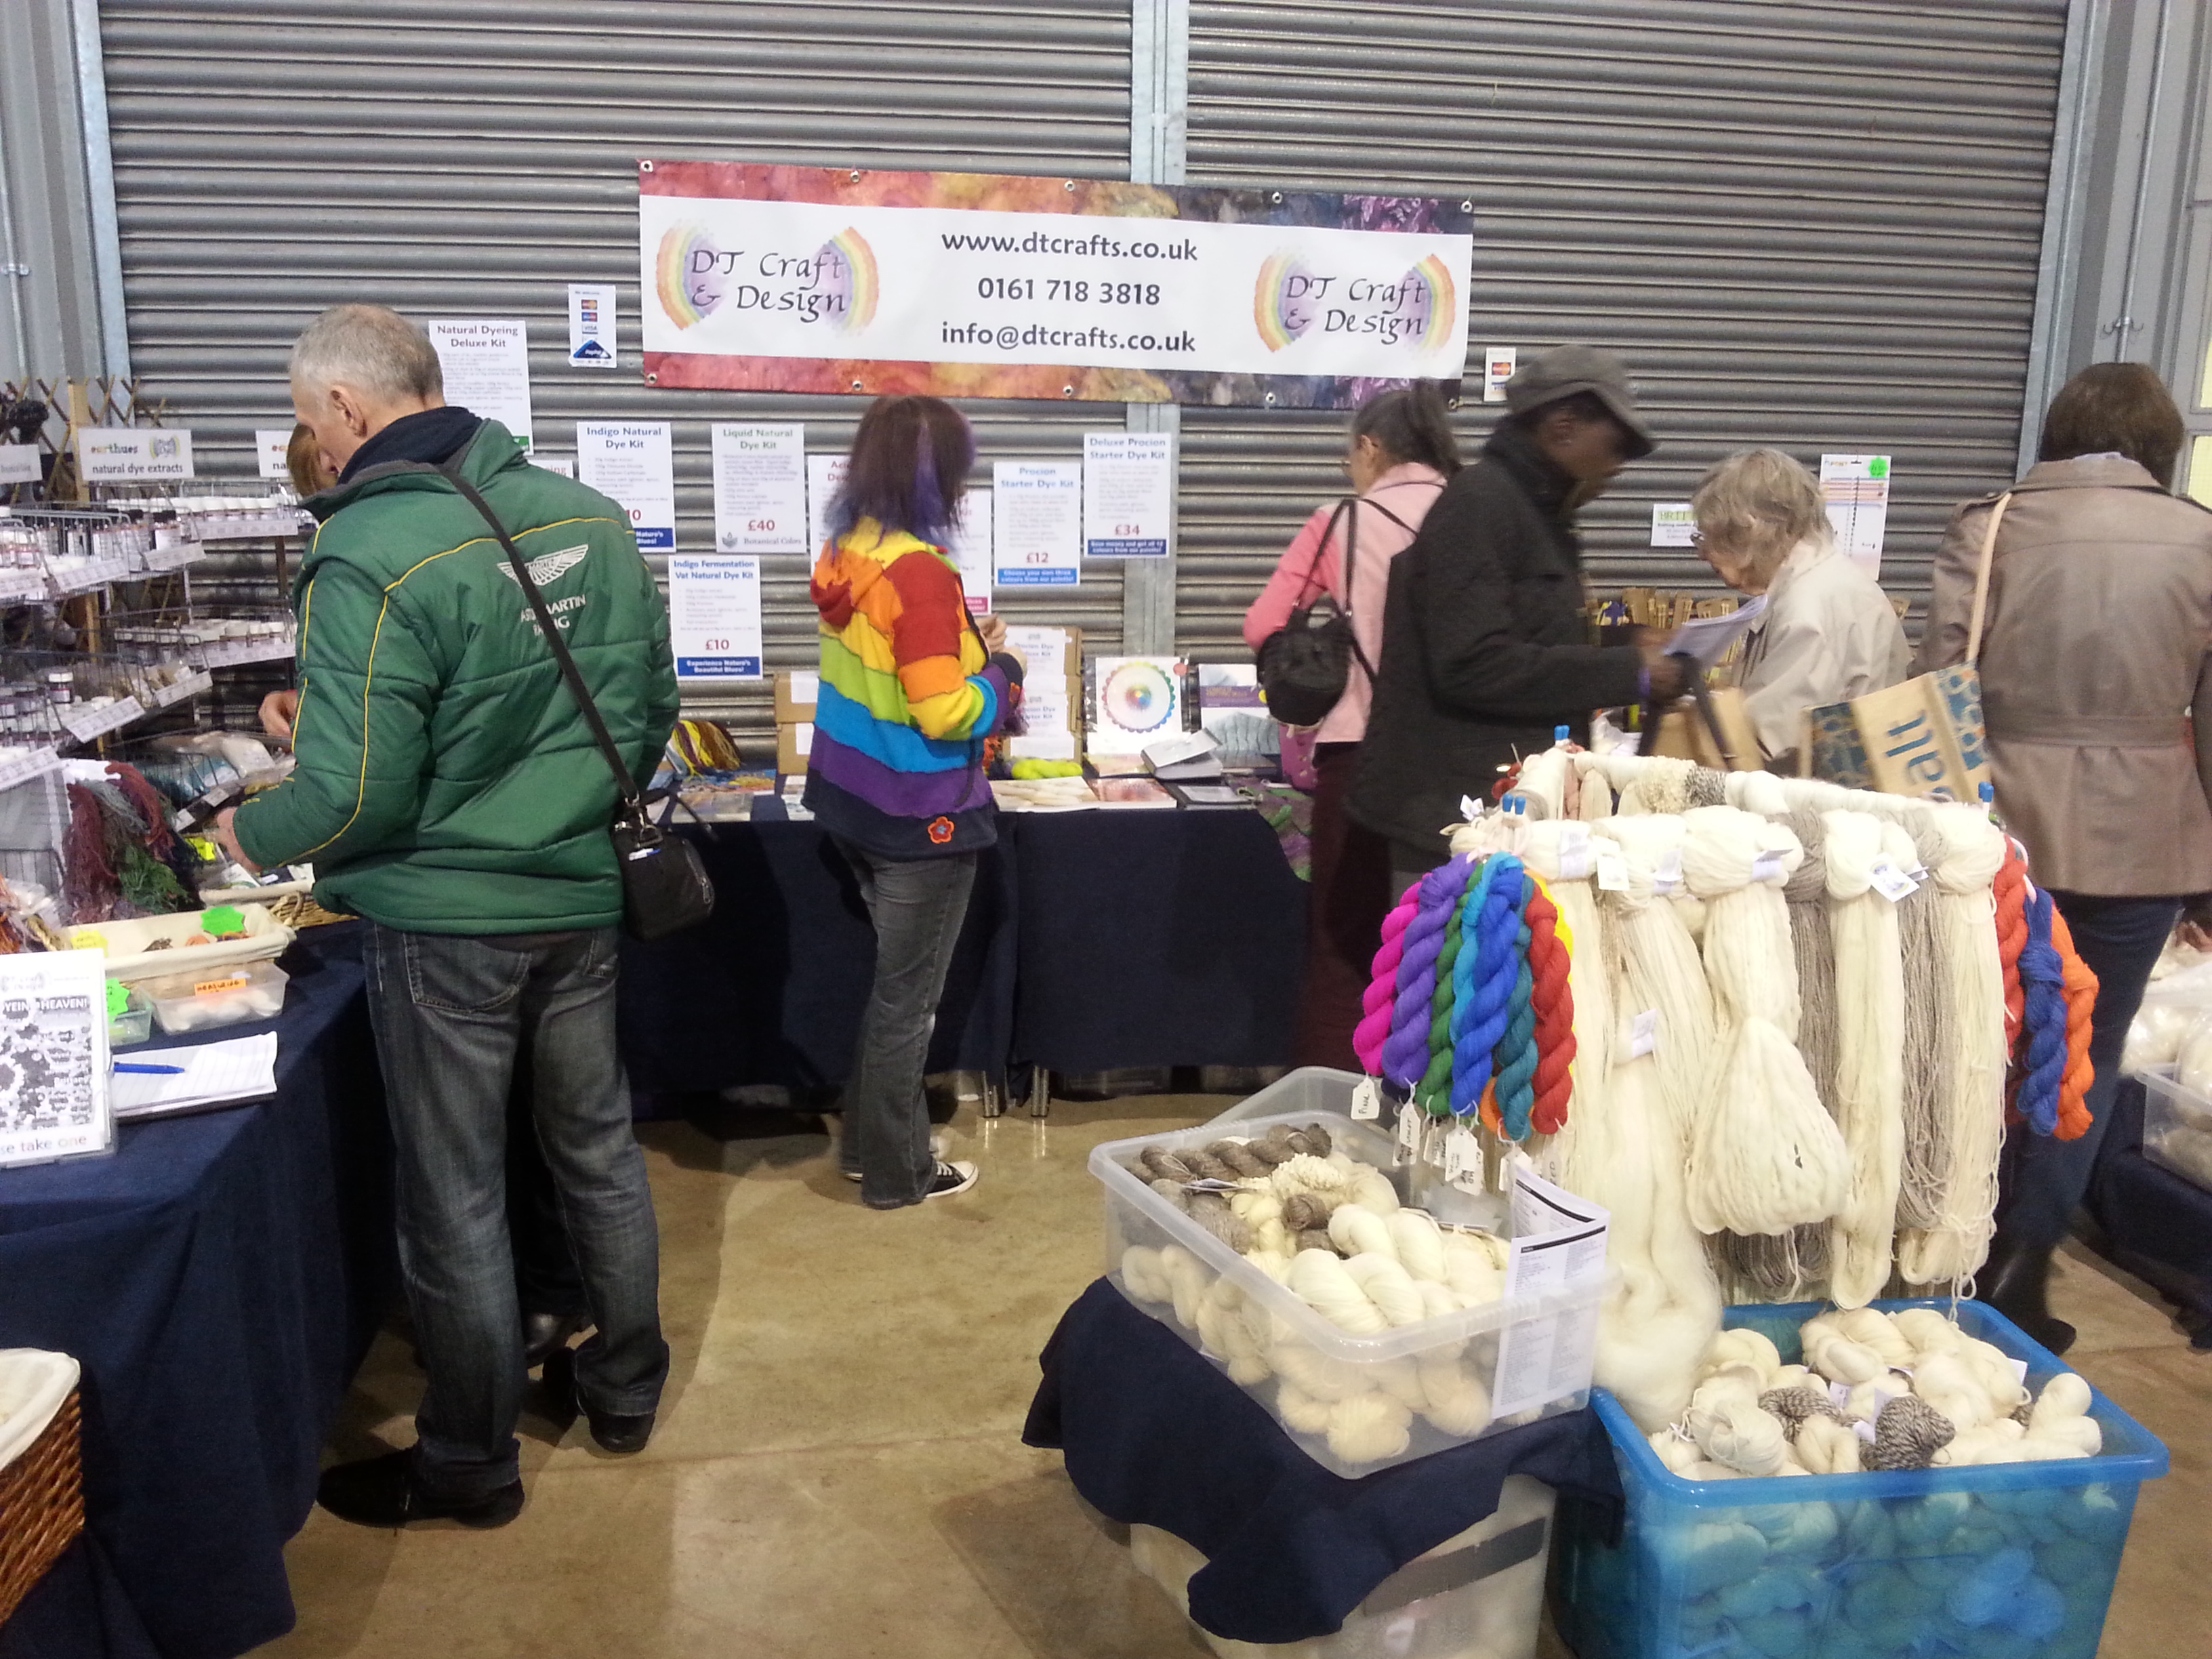 DT Craft and Design stall at Bakewell wool gathering october 2015